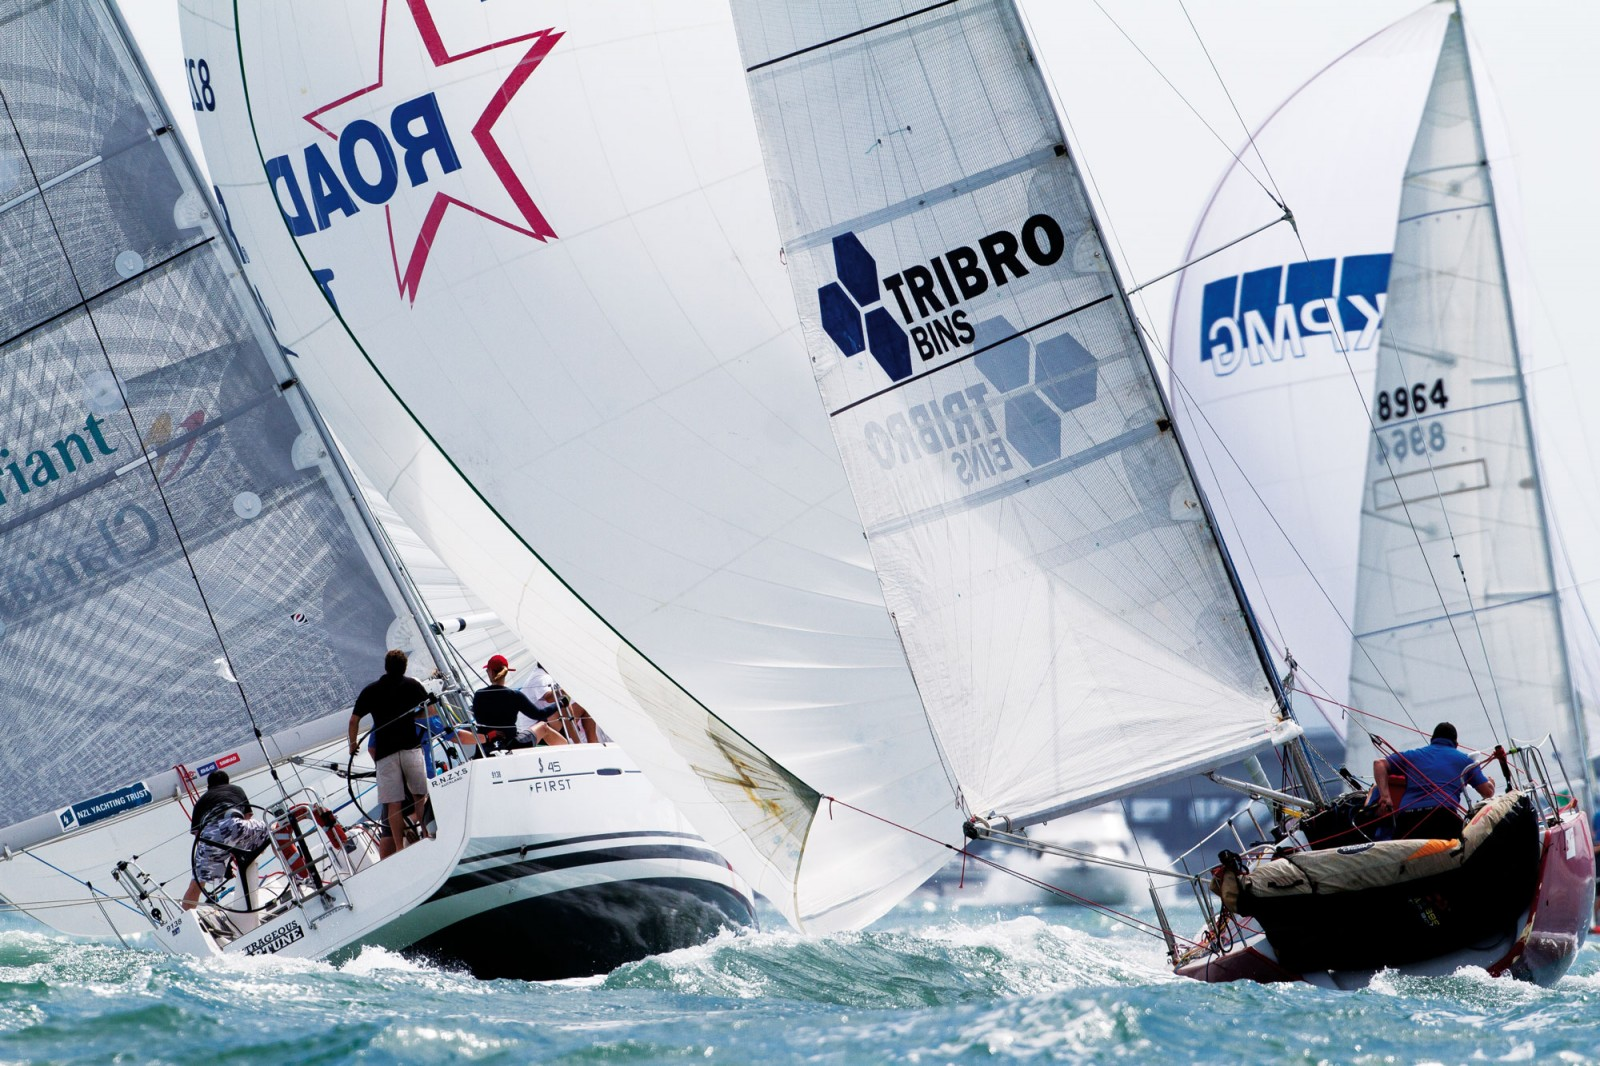 Auckland's modern racing fleet is highly competitive. With several long-established yacht clubs on the Waitemata Harbour catering for keel yachts and centreboarders, there is racing almost every night of the week, and during weekends. As it has been for over a century, the Waitemata is the spawning ground for the Kiwi yachtsmen and yachtswomen now coveted by international syndicates from as far afield as the Swiss Alinghi team, the U.S. Oracle team and Italy's Luna Rossa campaigns. The next America's Cup race in 2013 will be in catamarans, which achieve speeds never before seen under sail. In 2012, high-tech catamarans are experimenting in the fresh air of the Waitemata and the practice will become increasingly frenetic as the fiercely competitive challenger series looms.